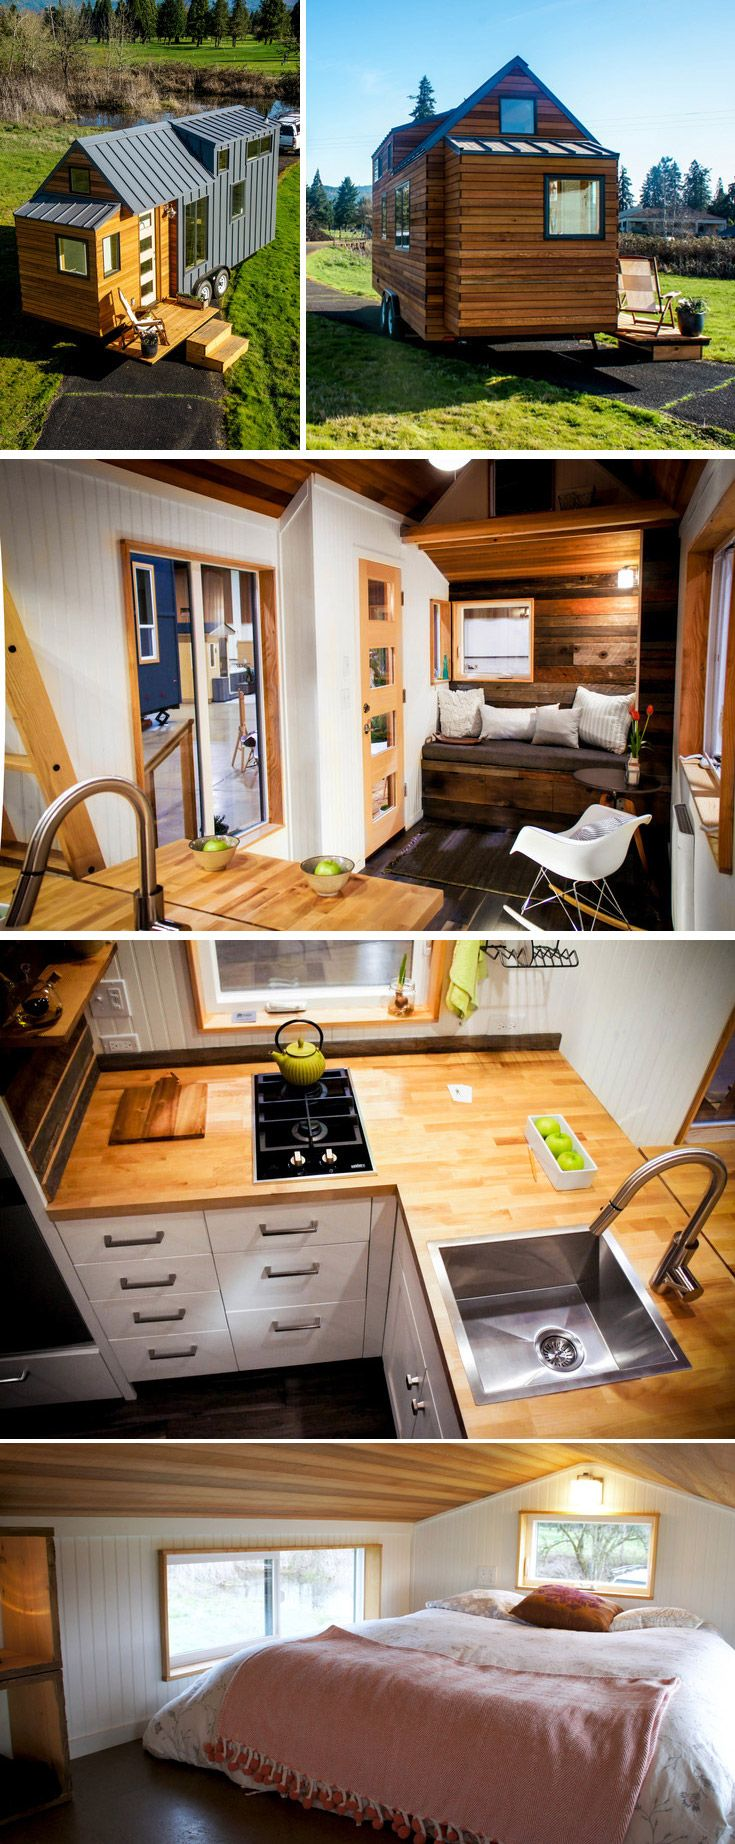 The Kootenay has a large loft, a drop down deck, a peninsula with extension leaf in the kitchen, 5′ bathroom, and an optional bump out nook.